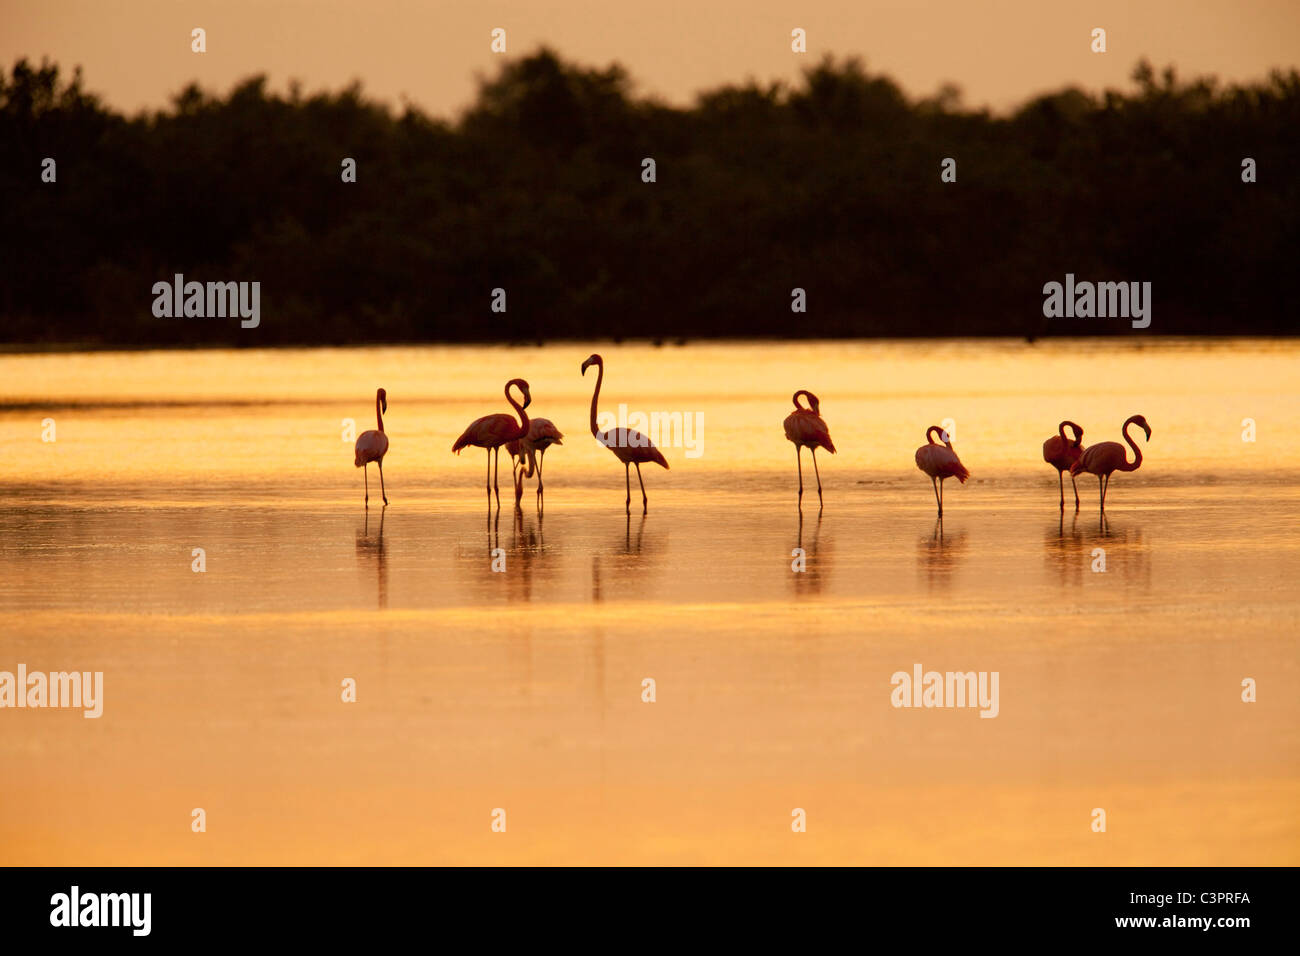 A flock of flamingoes (Phoenicopterus ruber) feed in waters near Cuba at sunset. - Stock Image